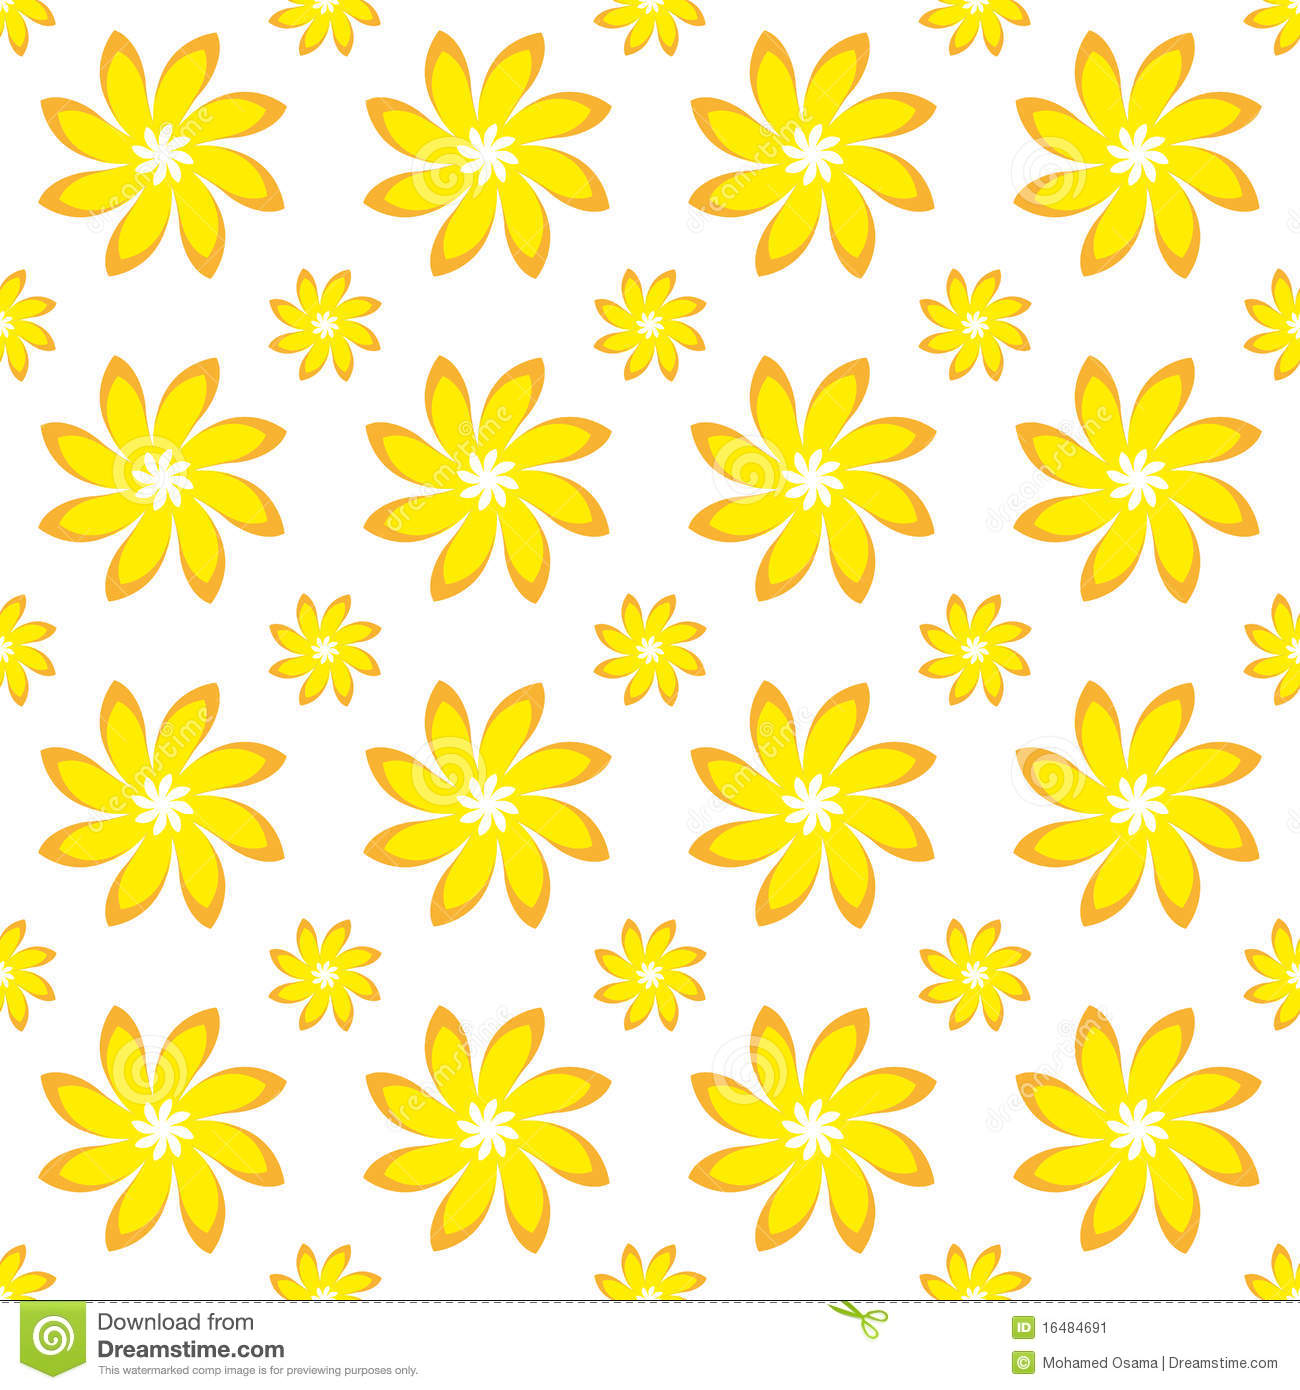 yellow floral pattern - photo #37